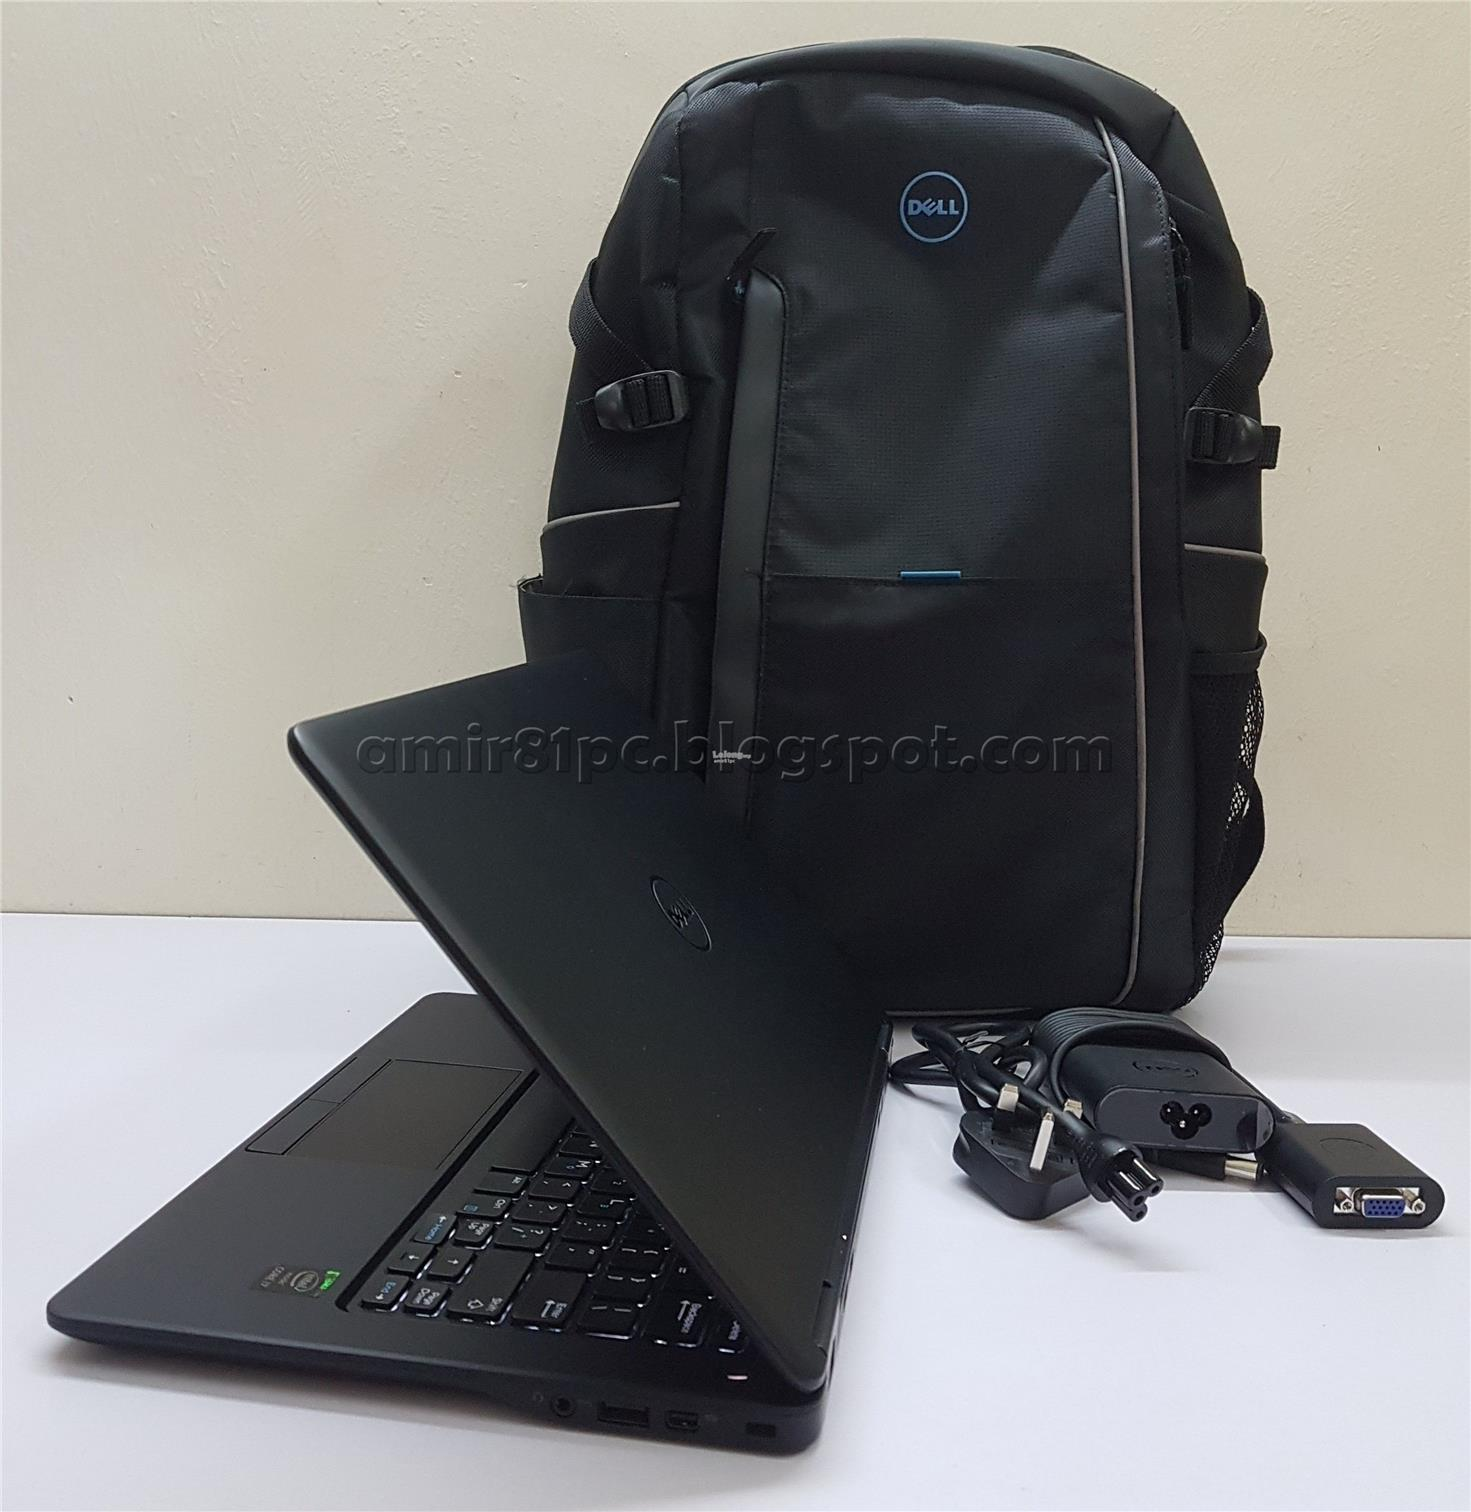 Dell Latitude E7250 /Core i7/128GB SSD/8GB RAM/ Wrty MAR 2019